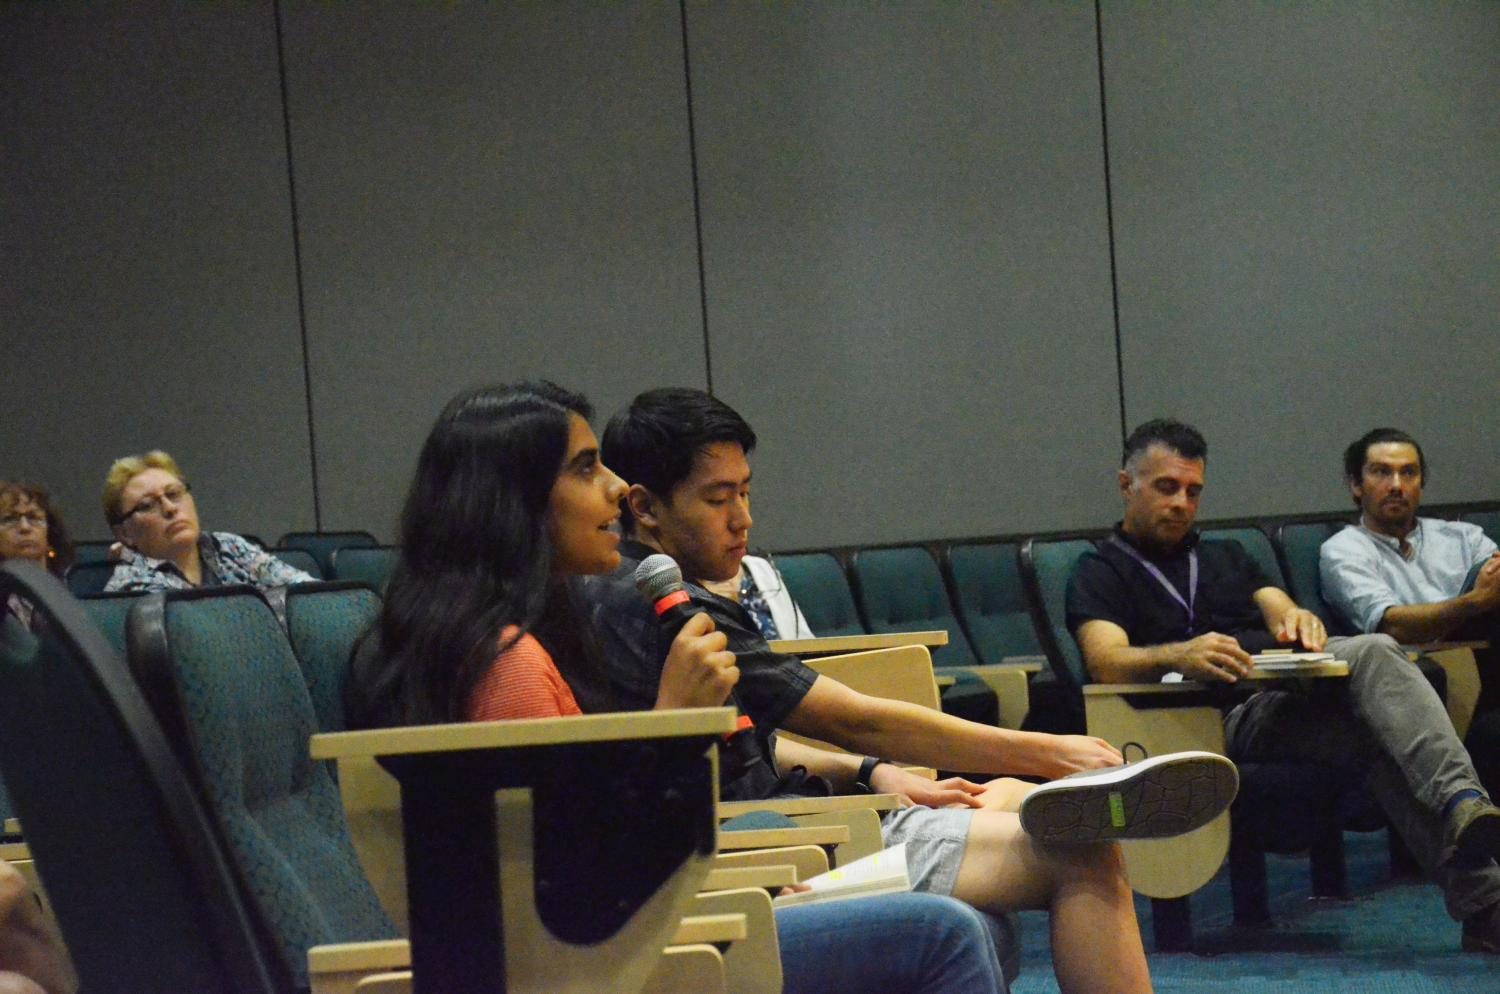 Aliesa Bahri (12) asks speaker Jeff Chang a question about the role of local leaders in sparking change. Todays Q&A session ran from 12:50 to 1:30 p.m. today.